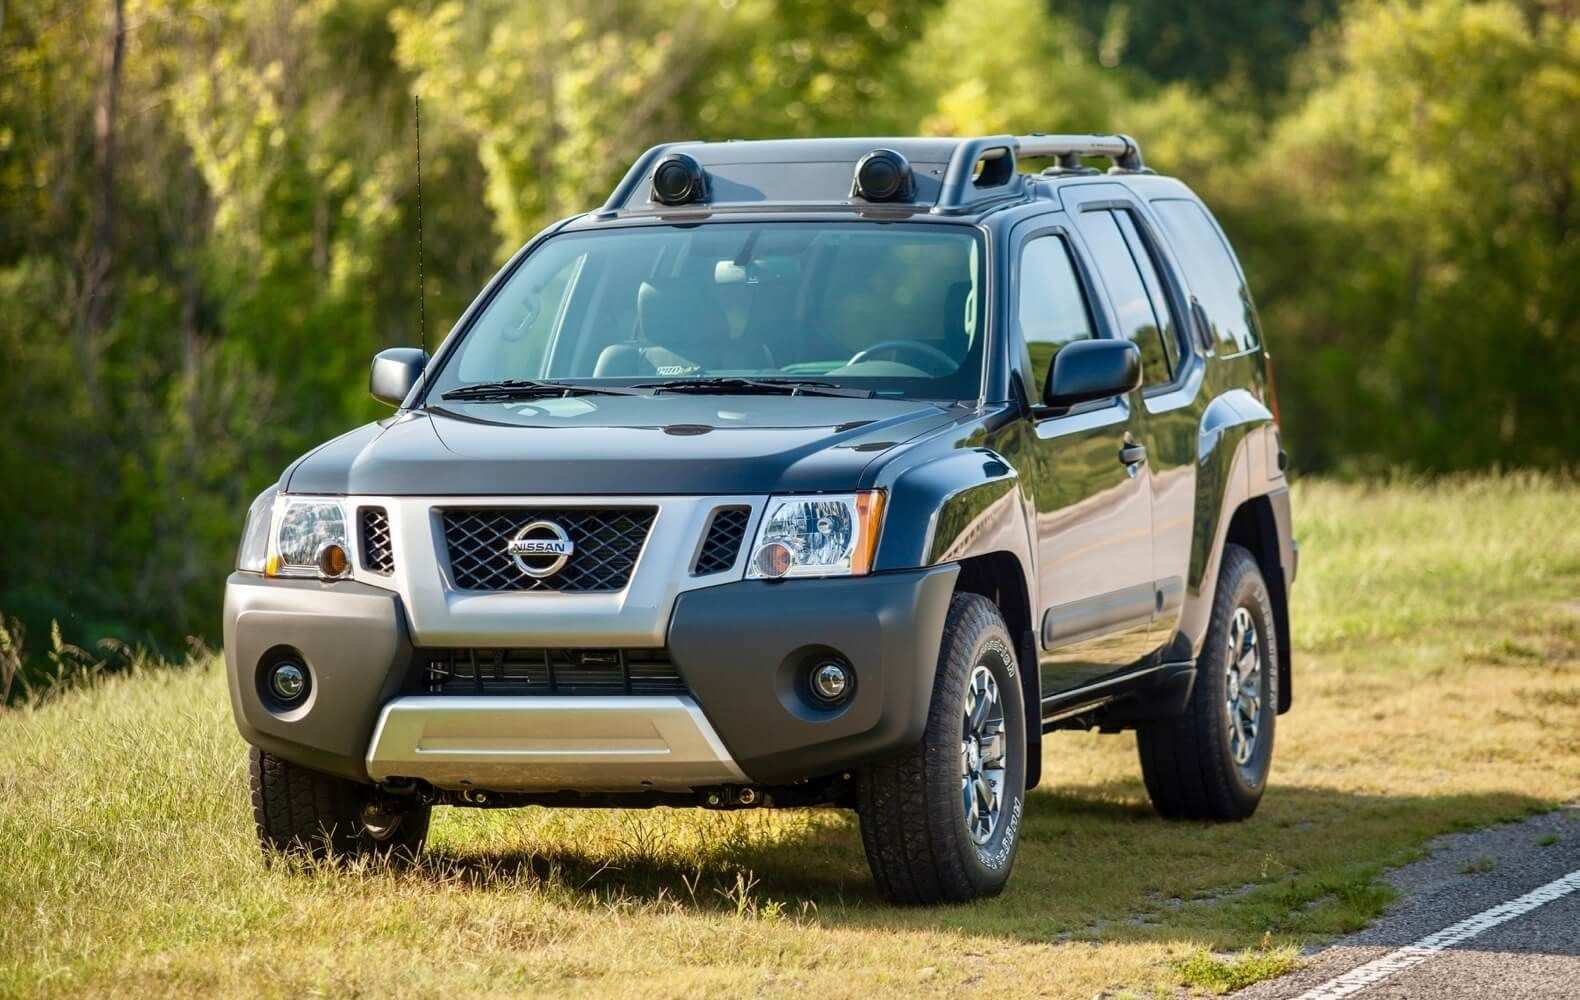 60 New Nissan Xterra 2020 Exterior Date Spy Shoot for Nissan Xterra 2020 Exterior Date